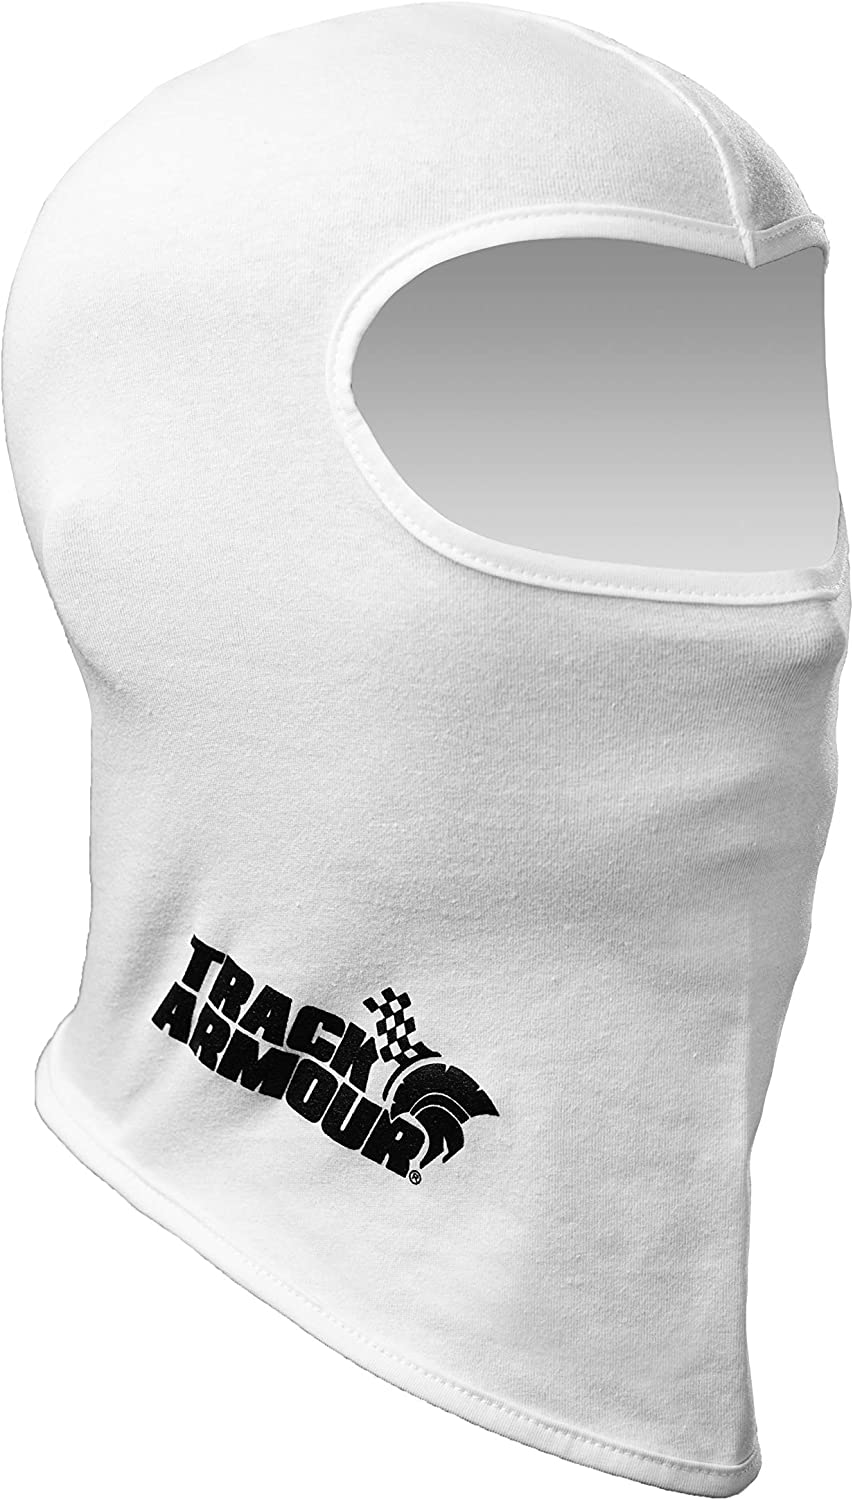 TRACK ARMOUR Racing Head Sock Balaclava for Auto and Motorcycle Racing WHITE COLOR TAHS-WT: Automotive